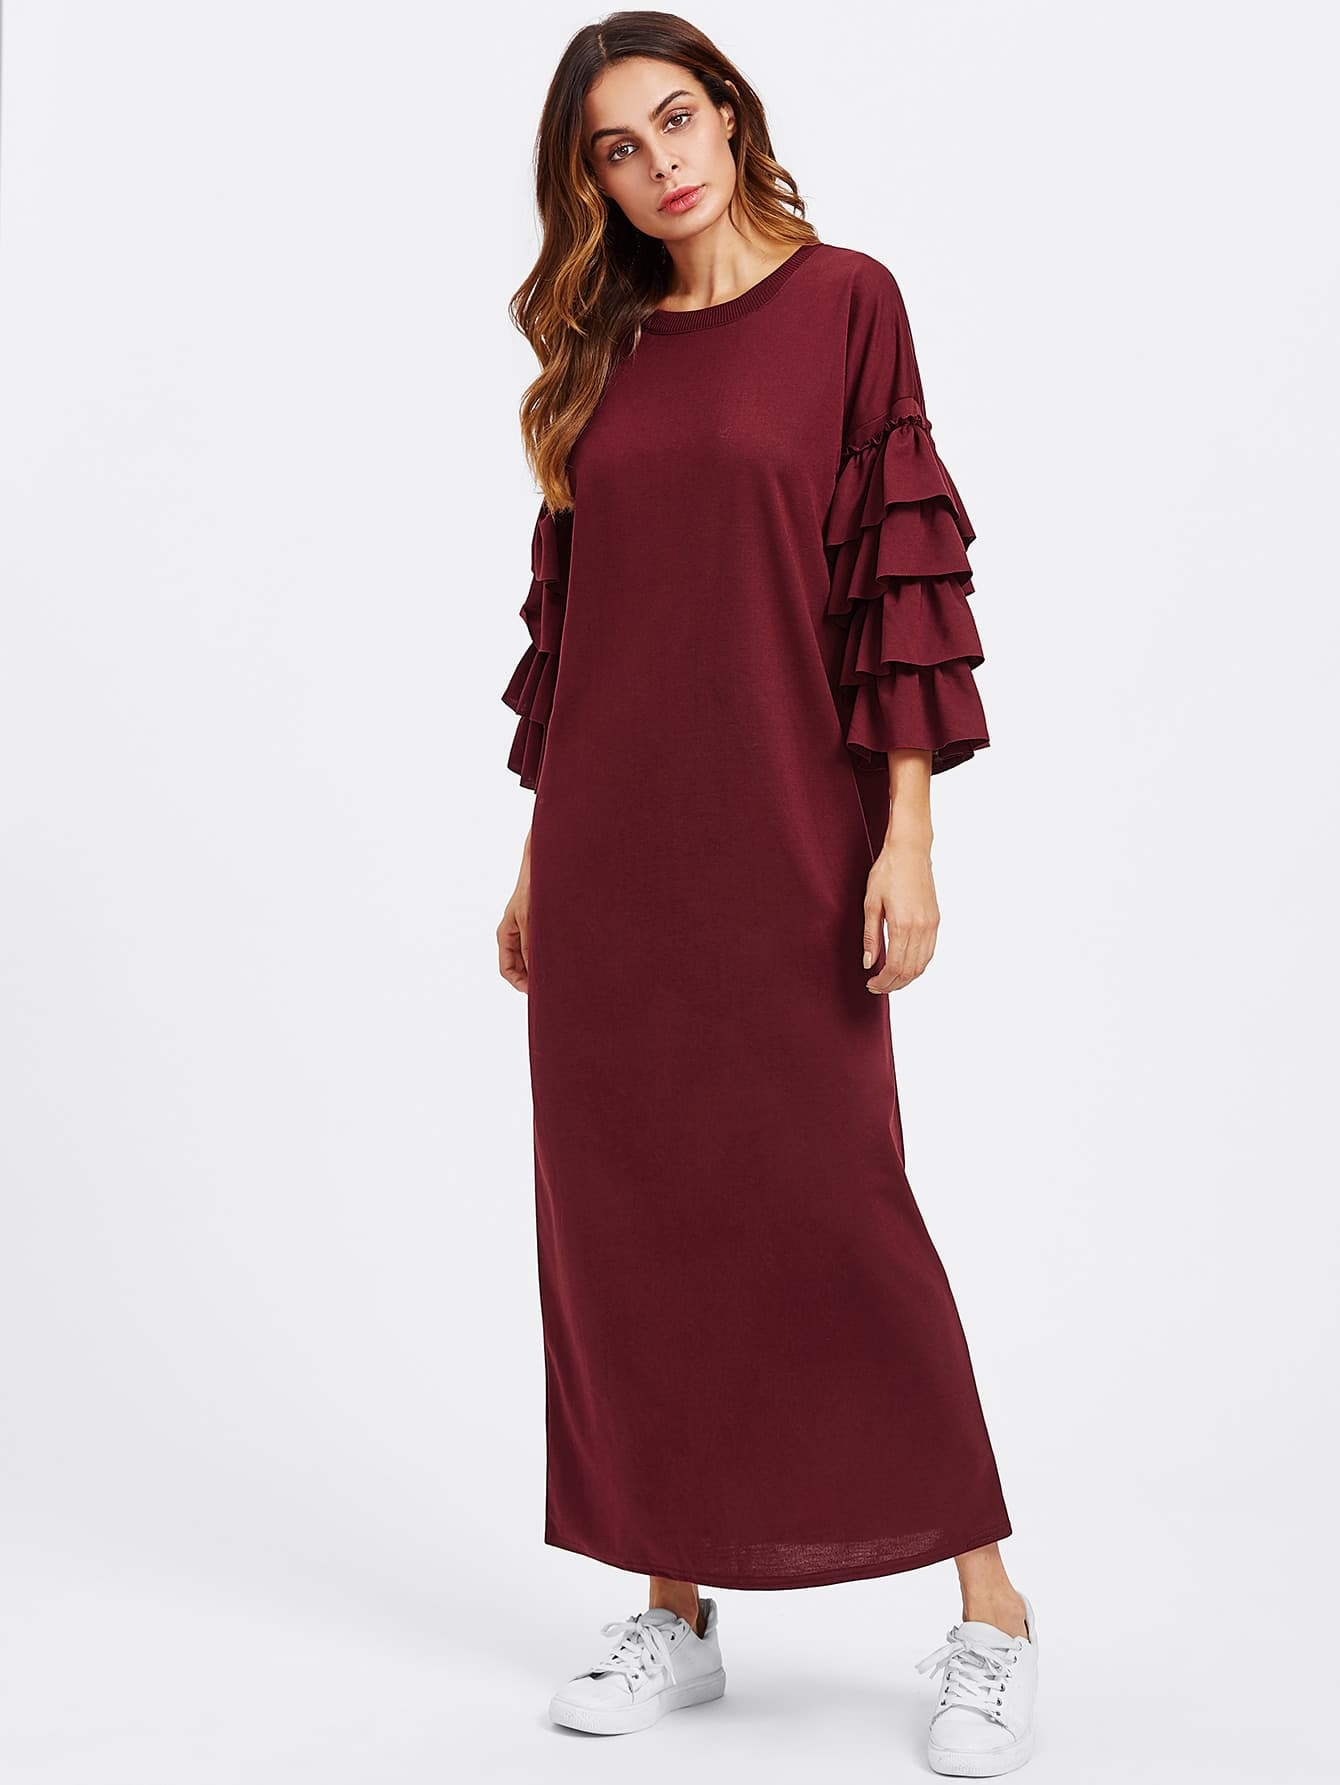 Tiered Frill Sleeve Long Hijab Dress frill detail bishop sleeve tiered botanical dress